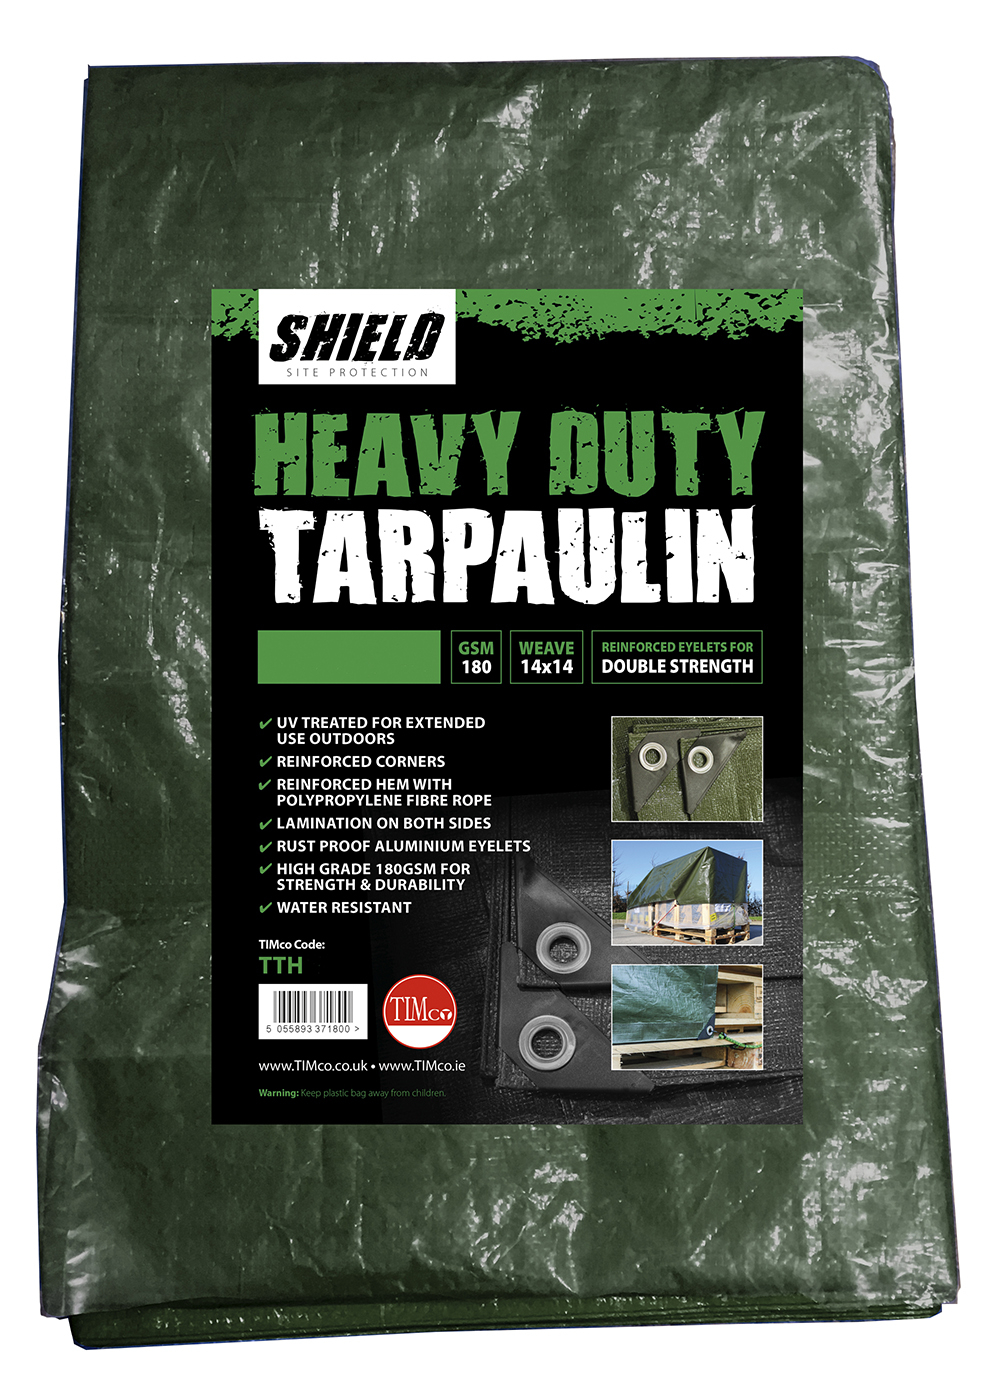 Shield Heavy Duty Tarpaulin 4m x 5m